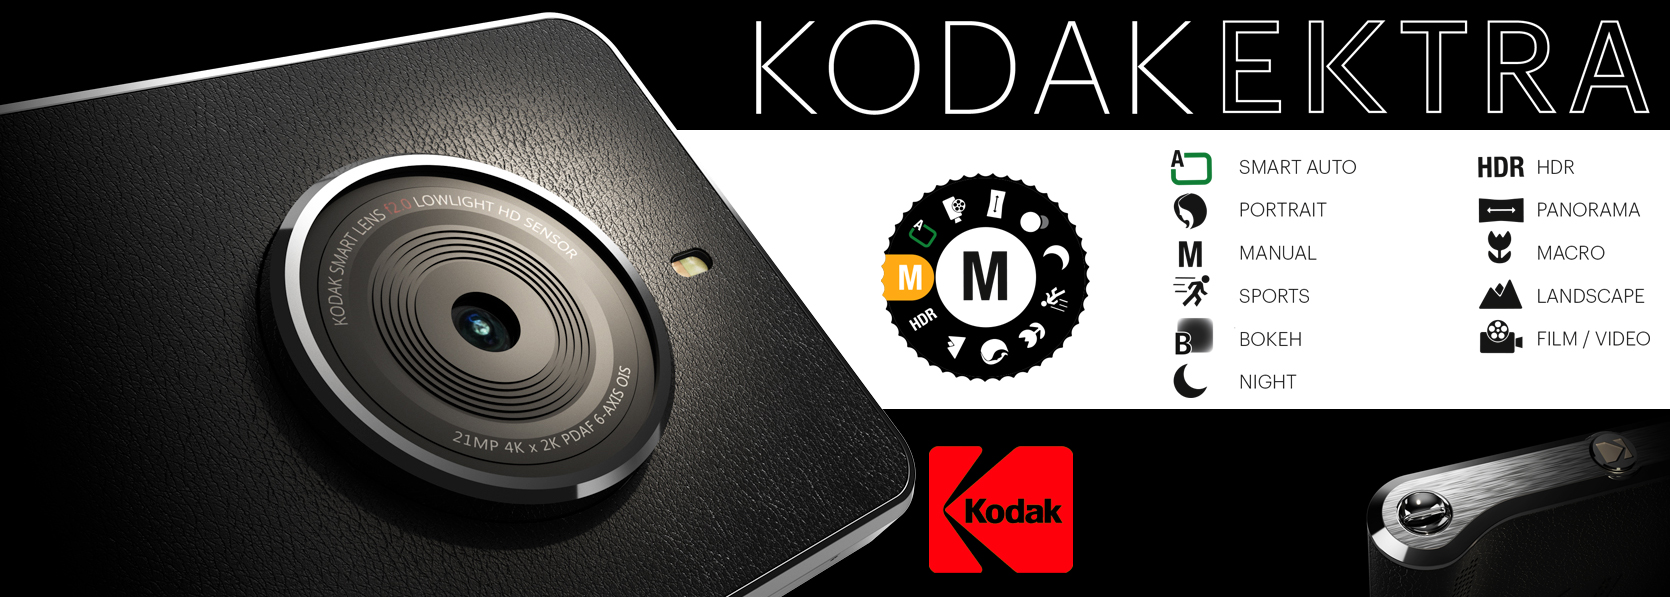 Kodak Ektra Smartphone Launched With Camera-Centric Features